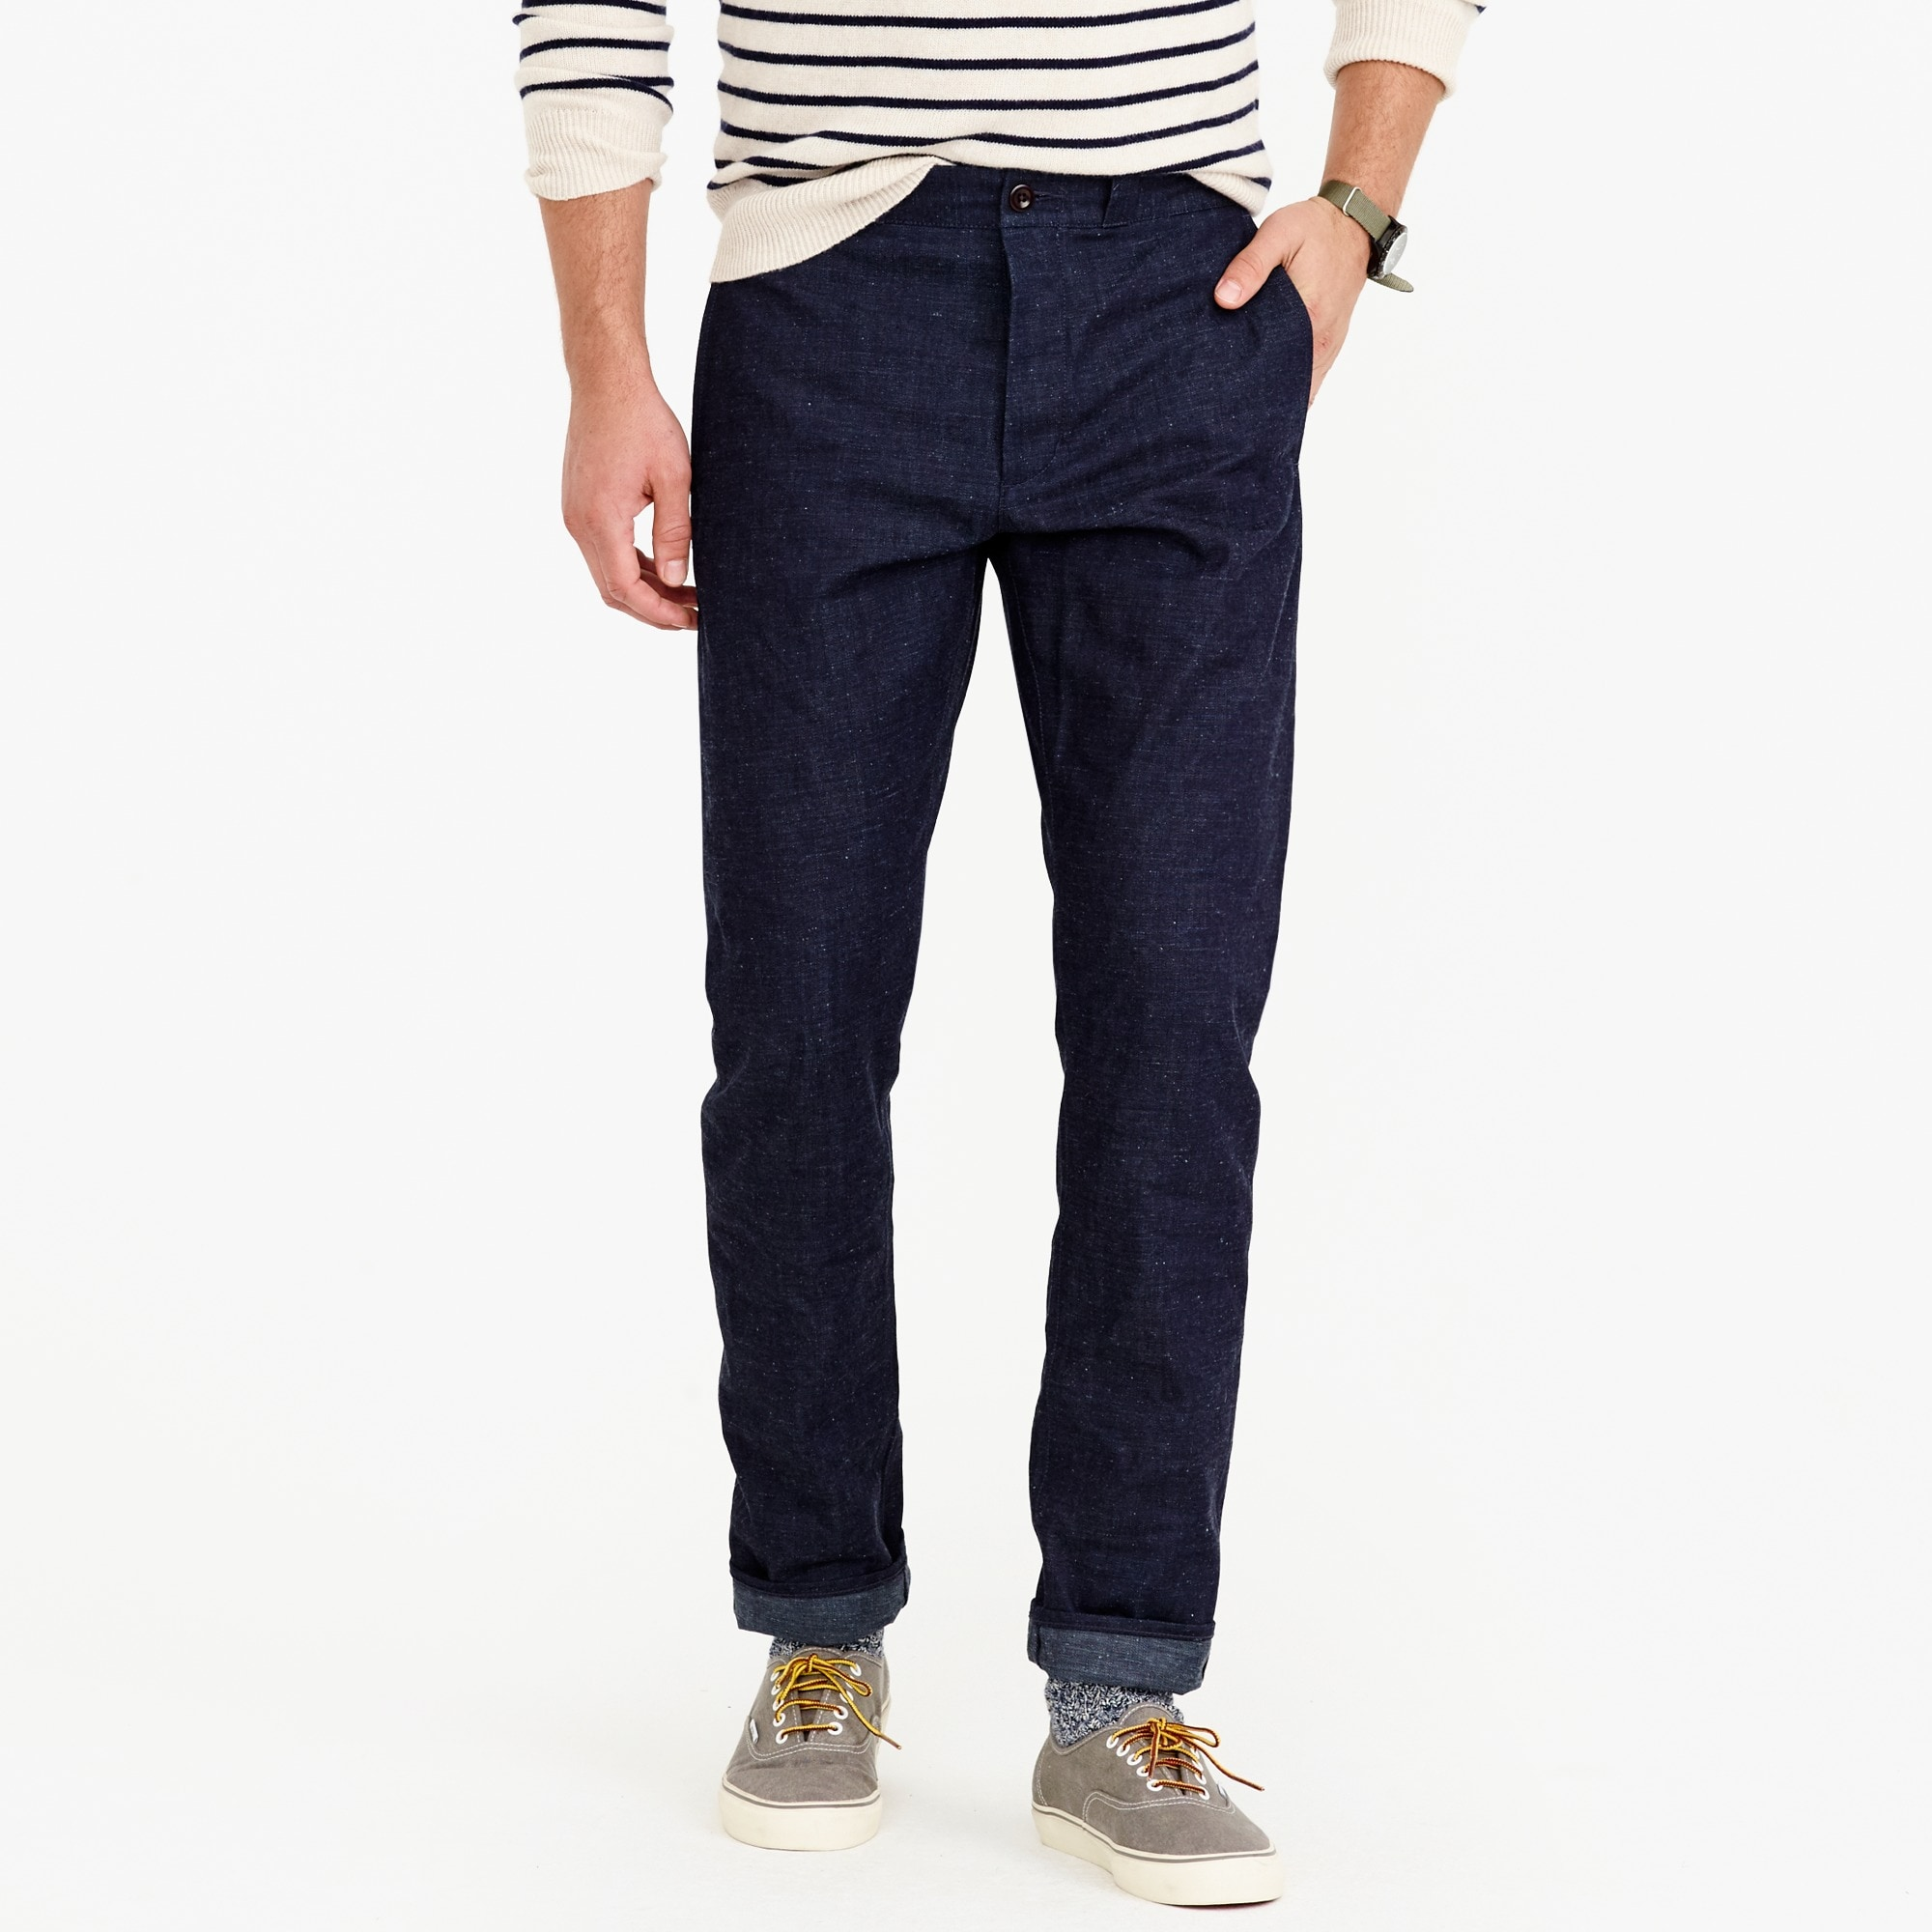 Wallace & Barnes chino pant in raw selvedge denim